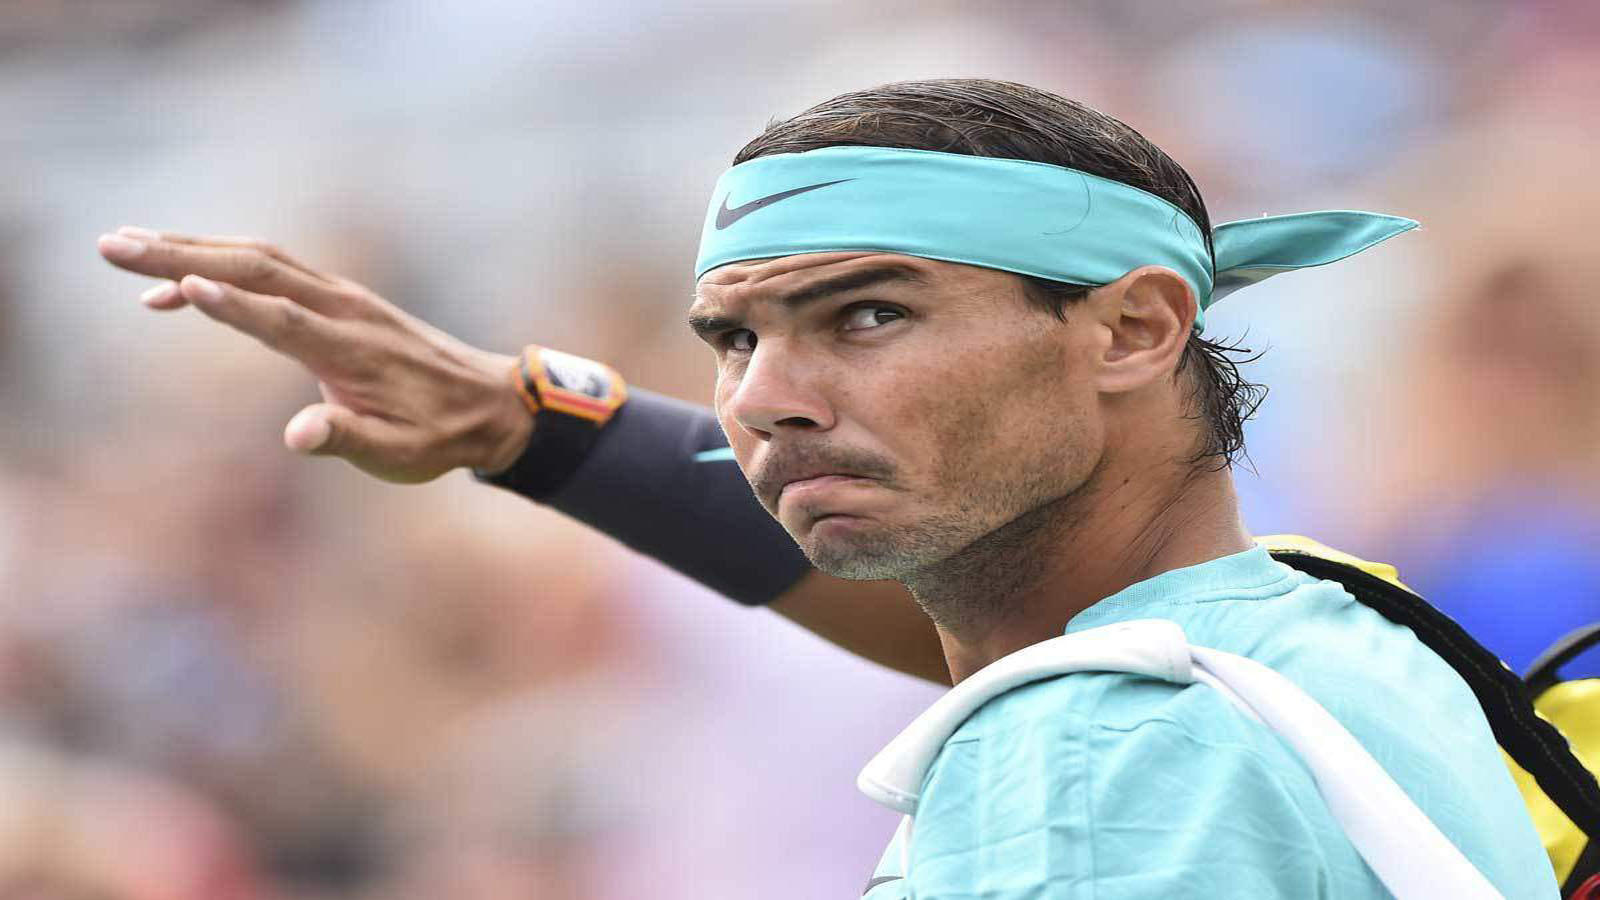 defending-champion-nadal-wont-play-us-open-slams-schedule